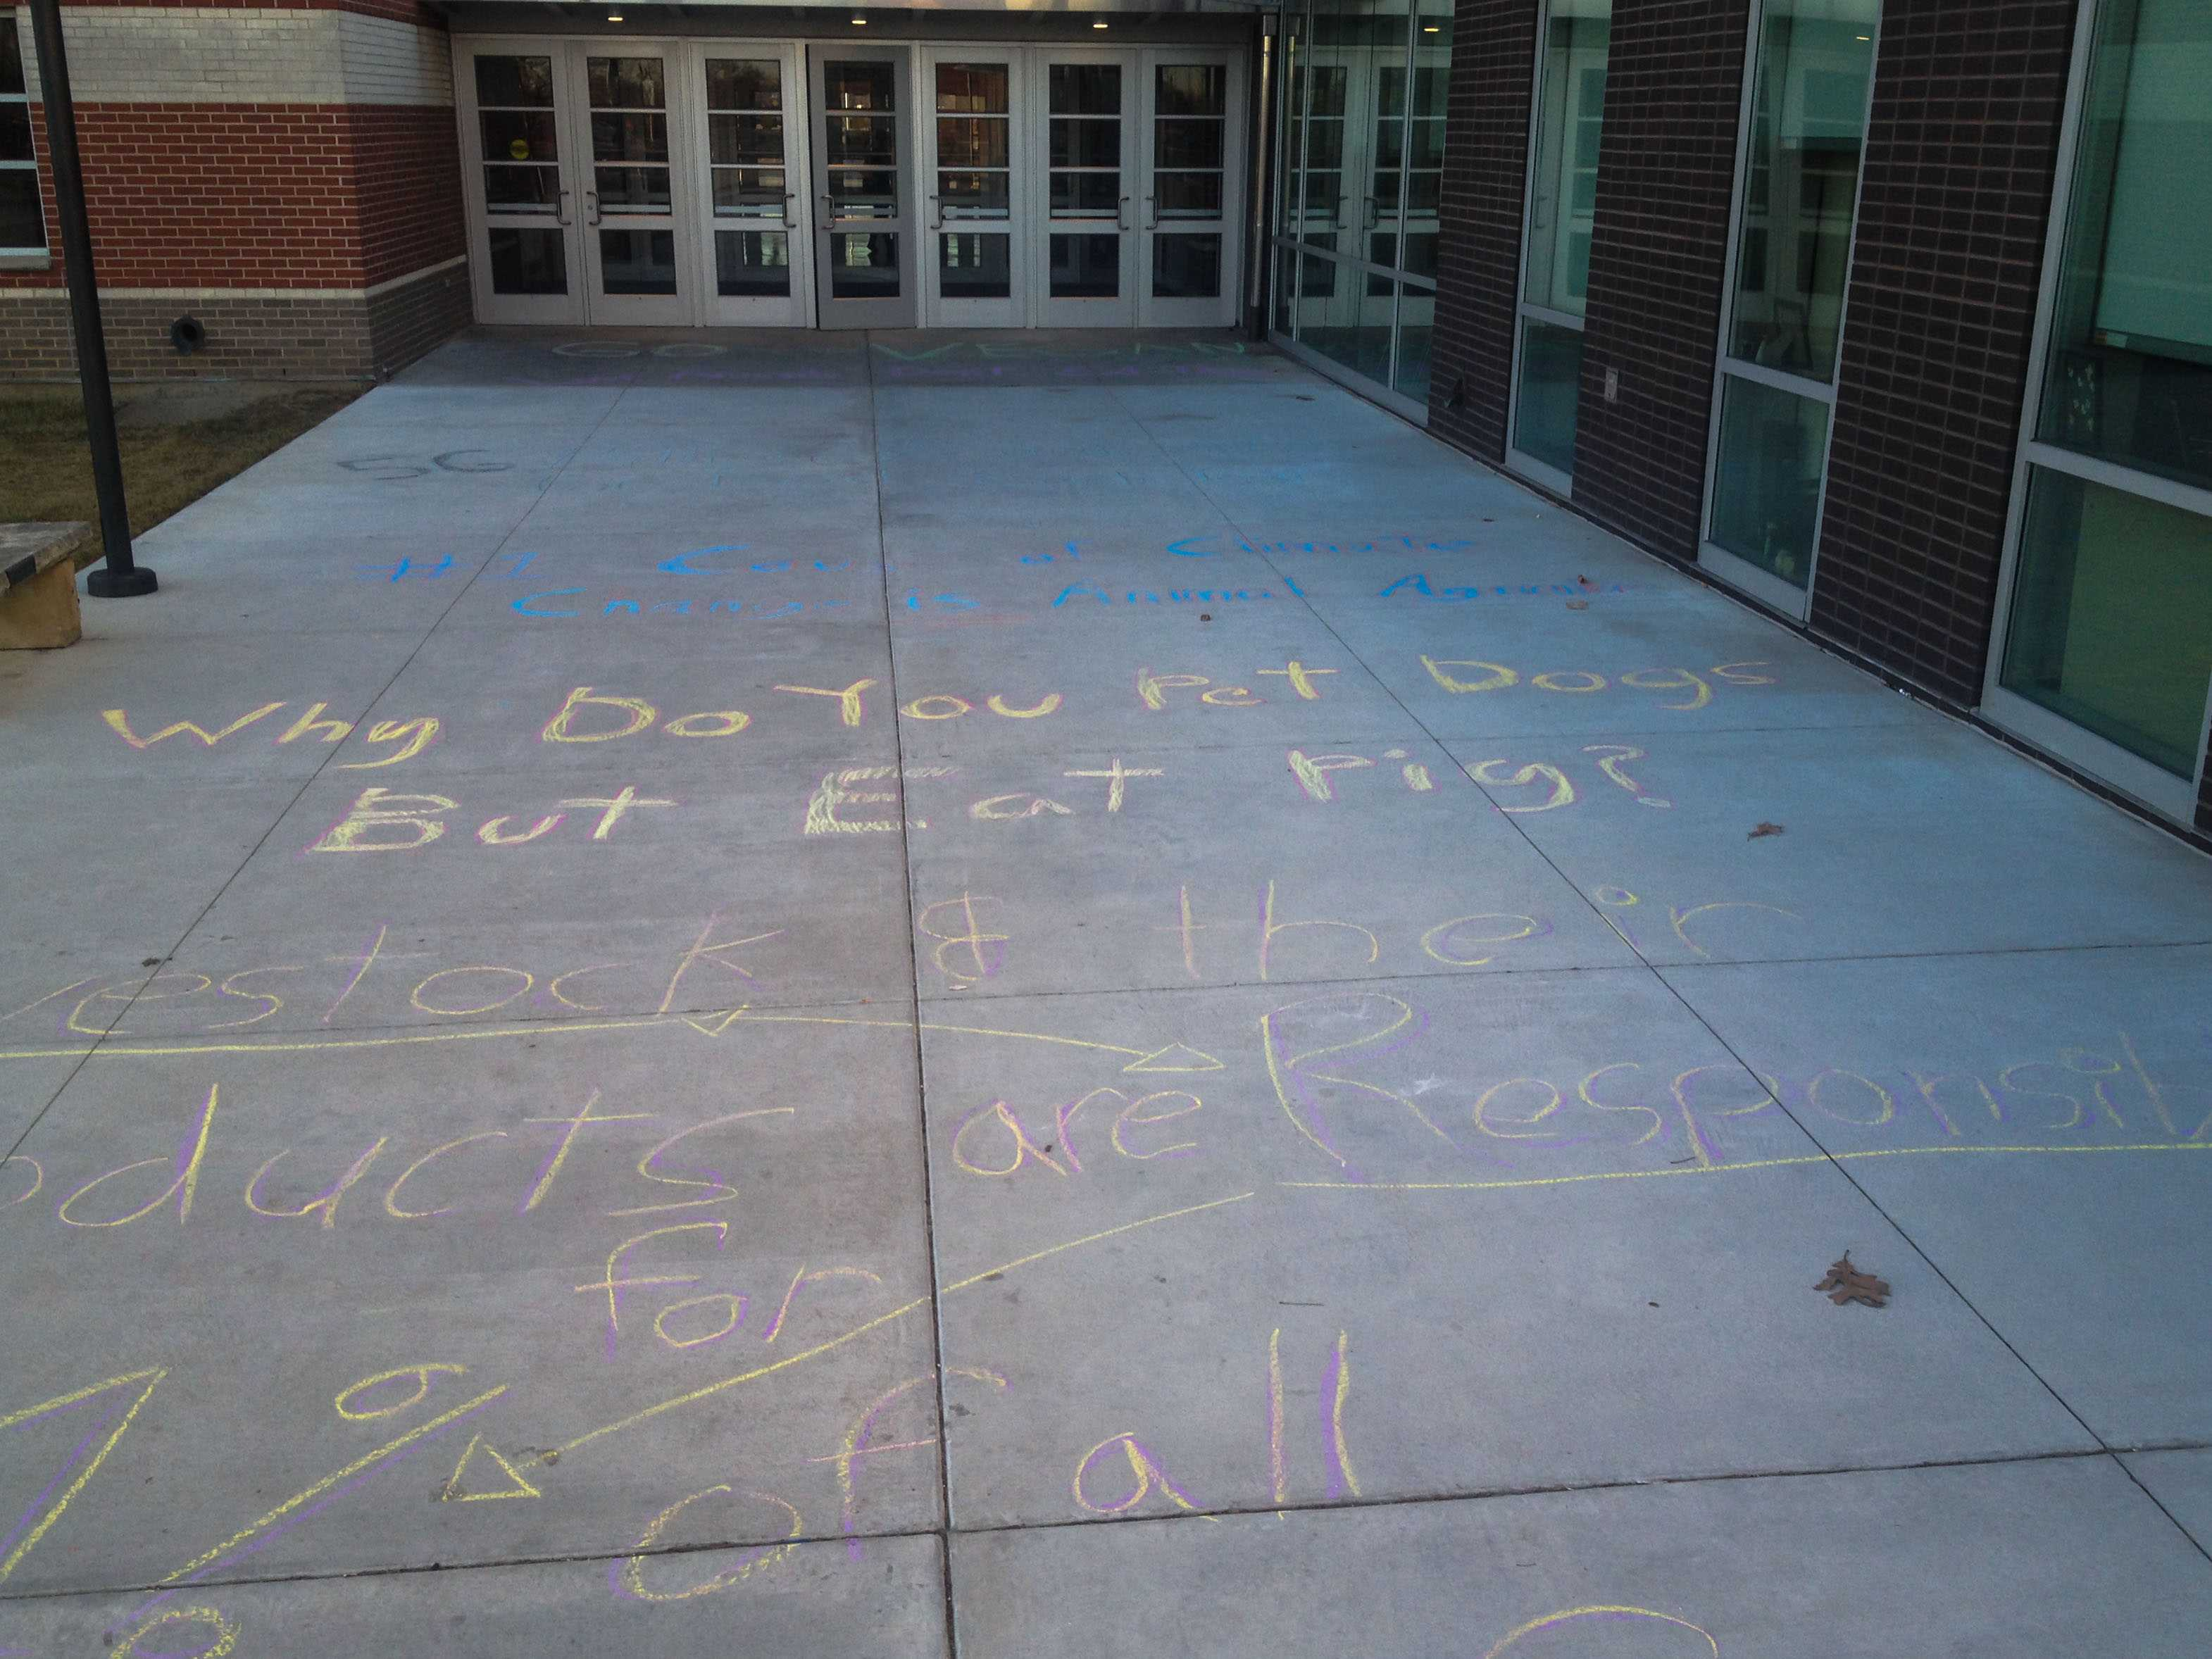 Walking into school, students and staff of FSHS observed the vegan propaganda written in sidewalk chalk. This was written by a group of vegan activists in the building. As well as the sidewalk chalk, they put up various flyers with facts about veganism and animal rights around the building.